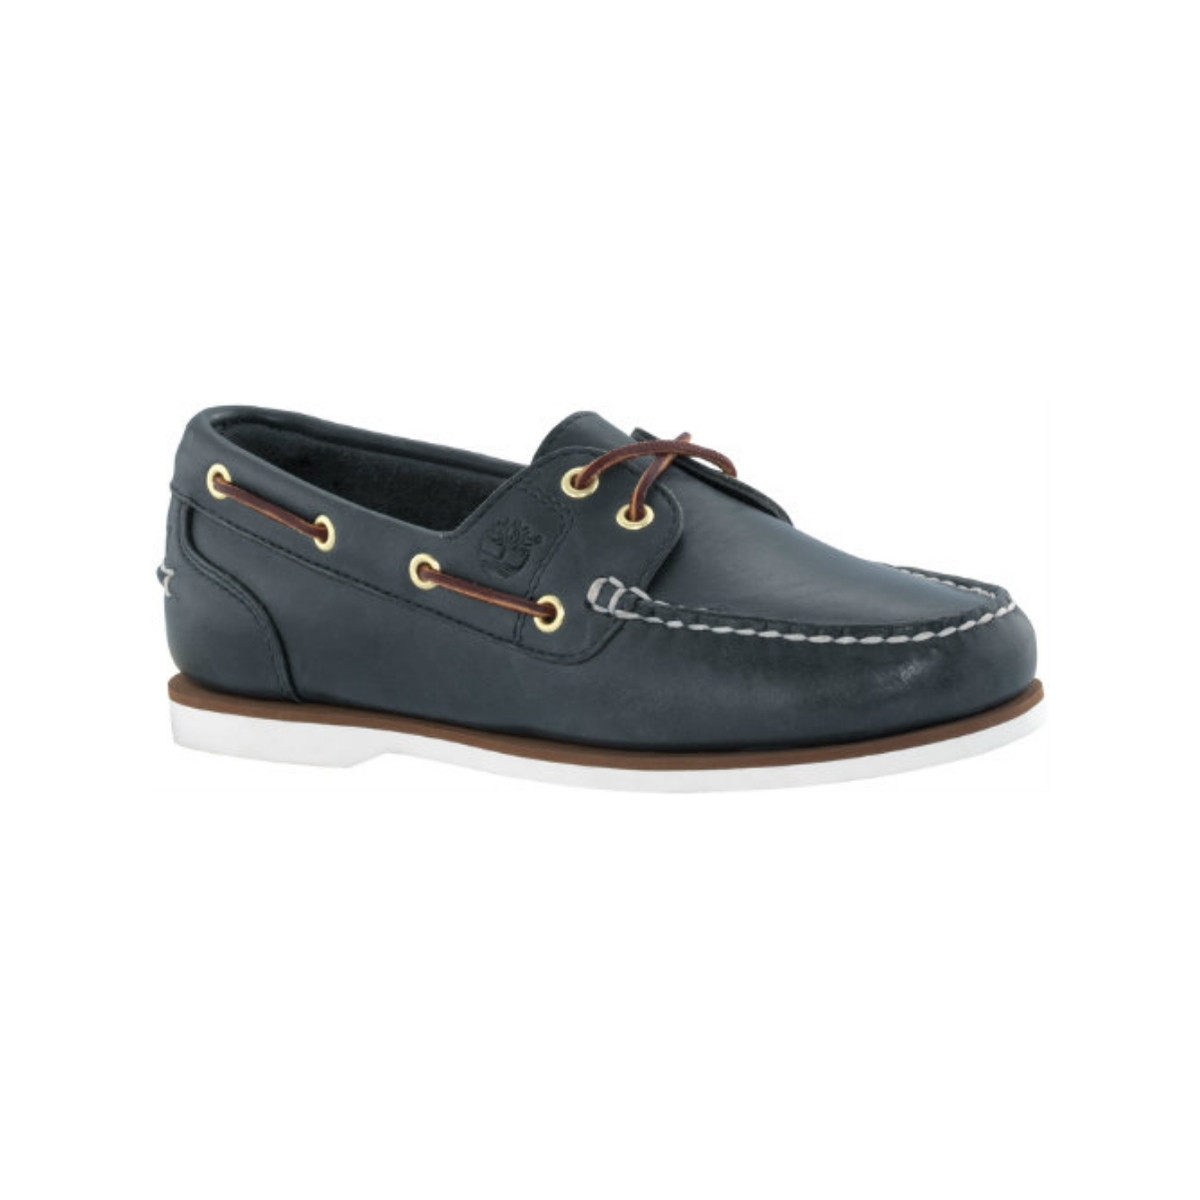 Timberland Classic Boat Amherst Bootsschuh Damen navy